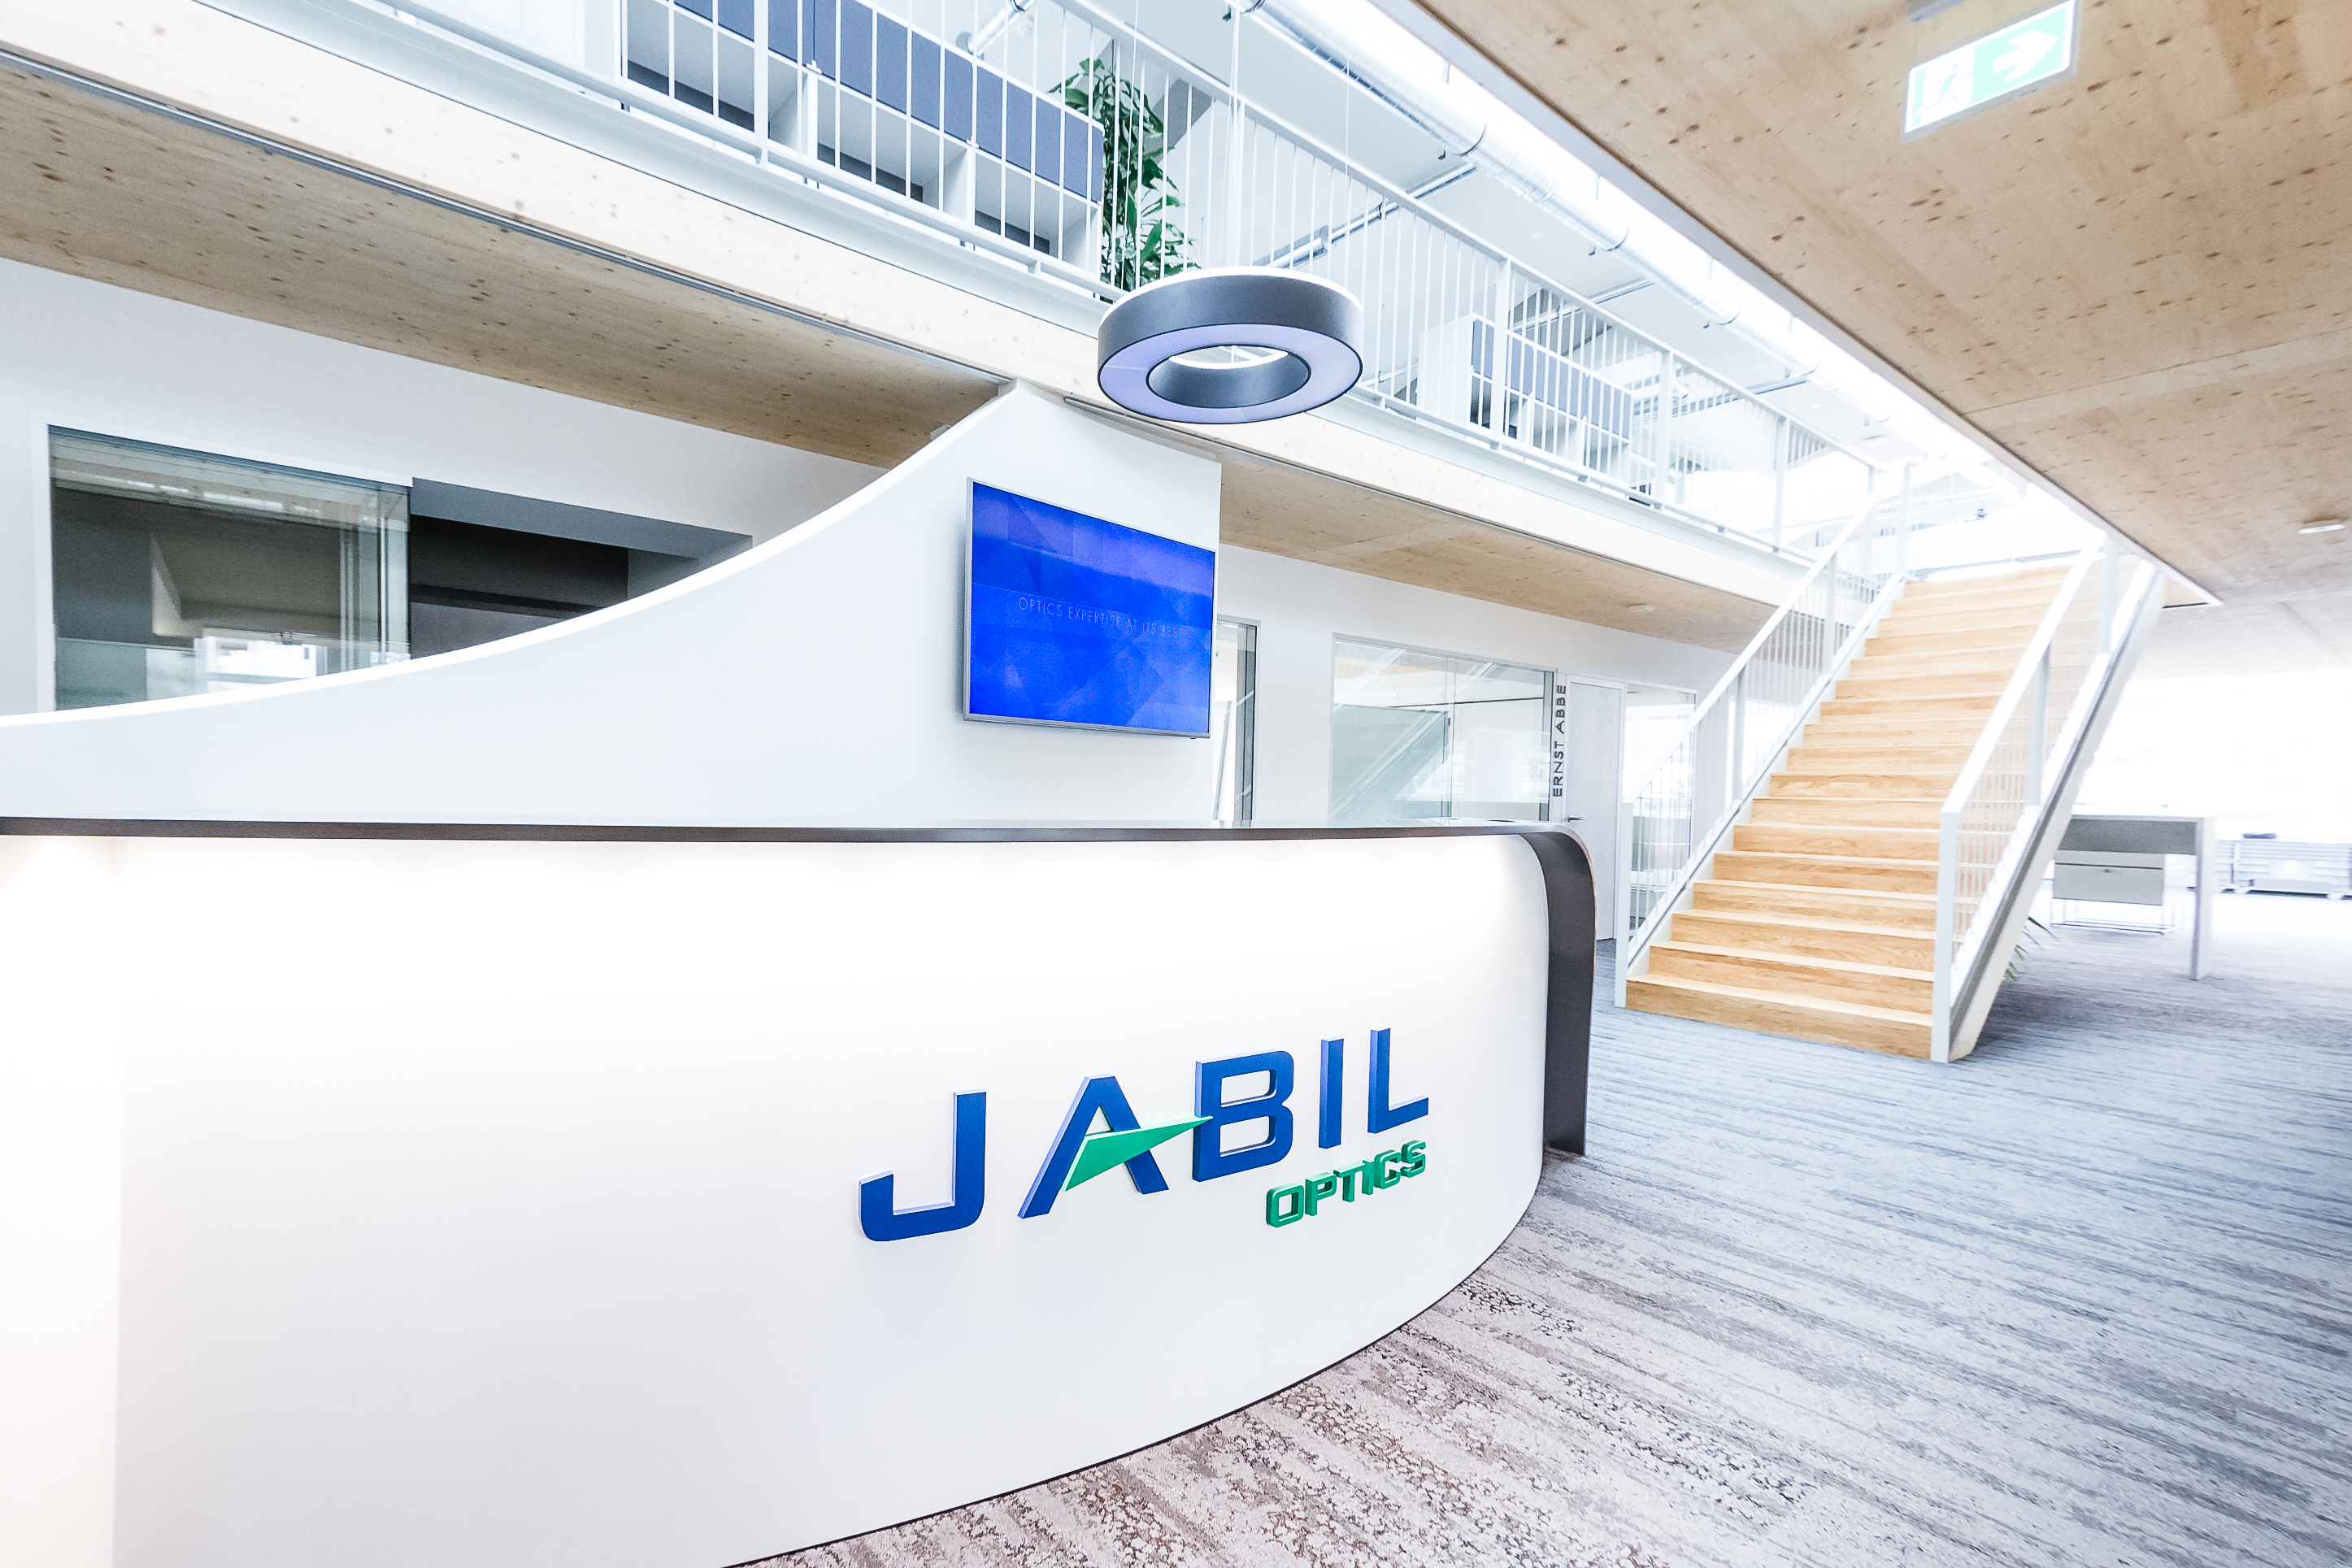 Jabil Optics